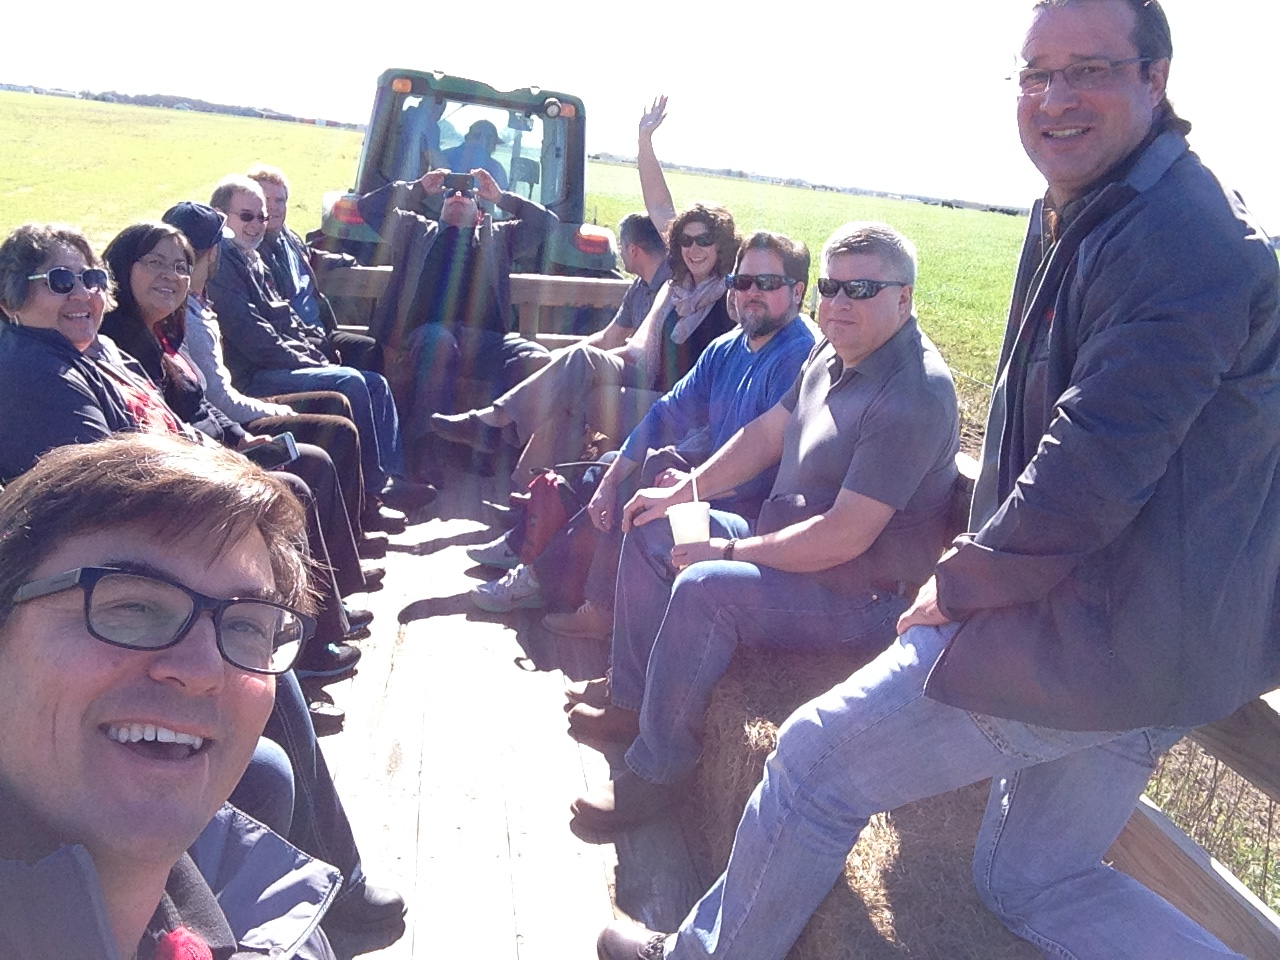 NTAA Members on a wagon being pulled by a tractor in a field